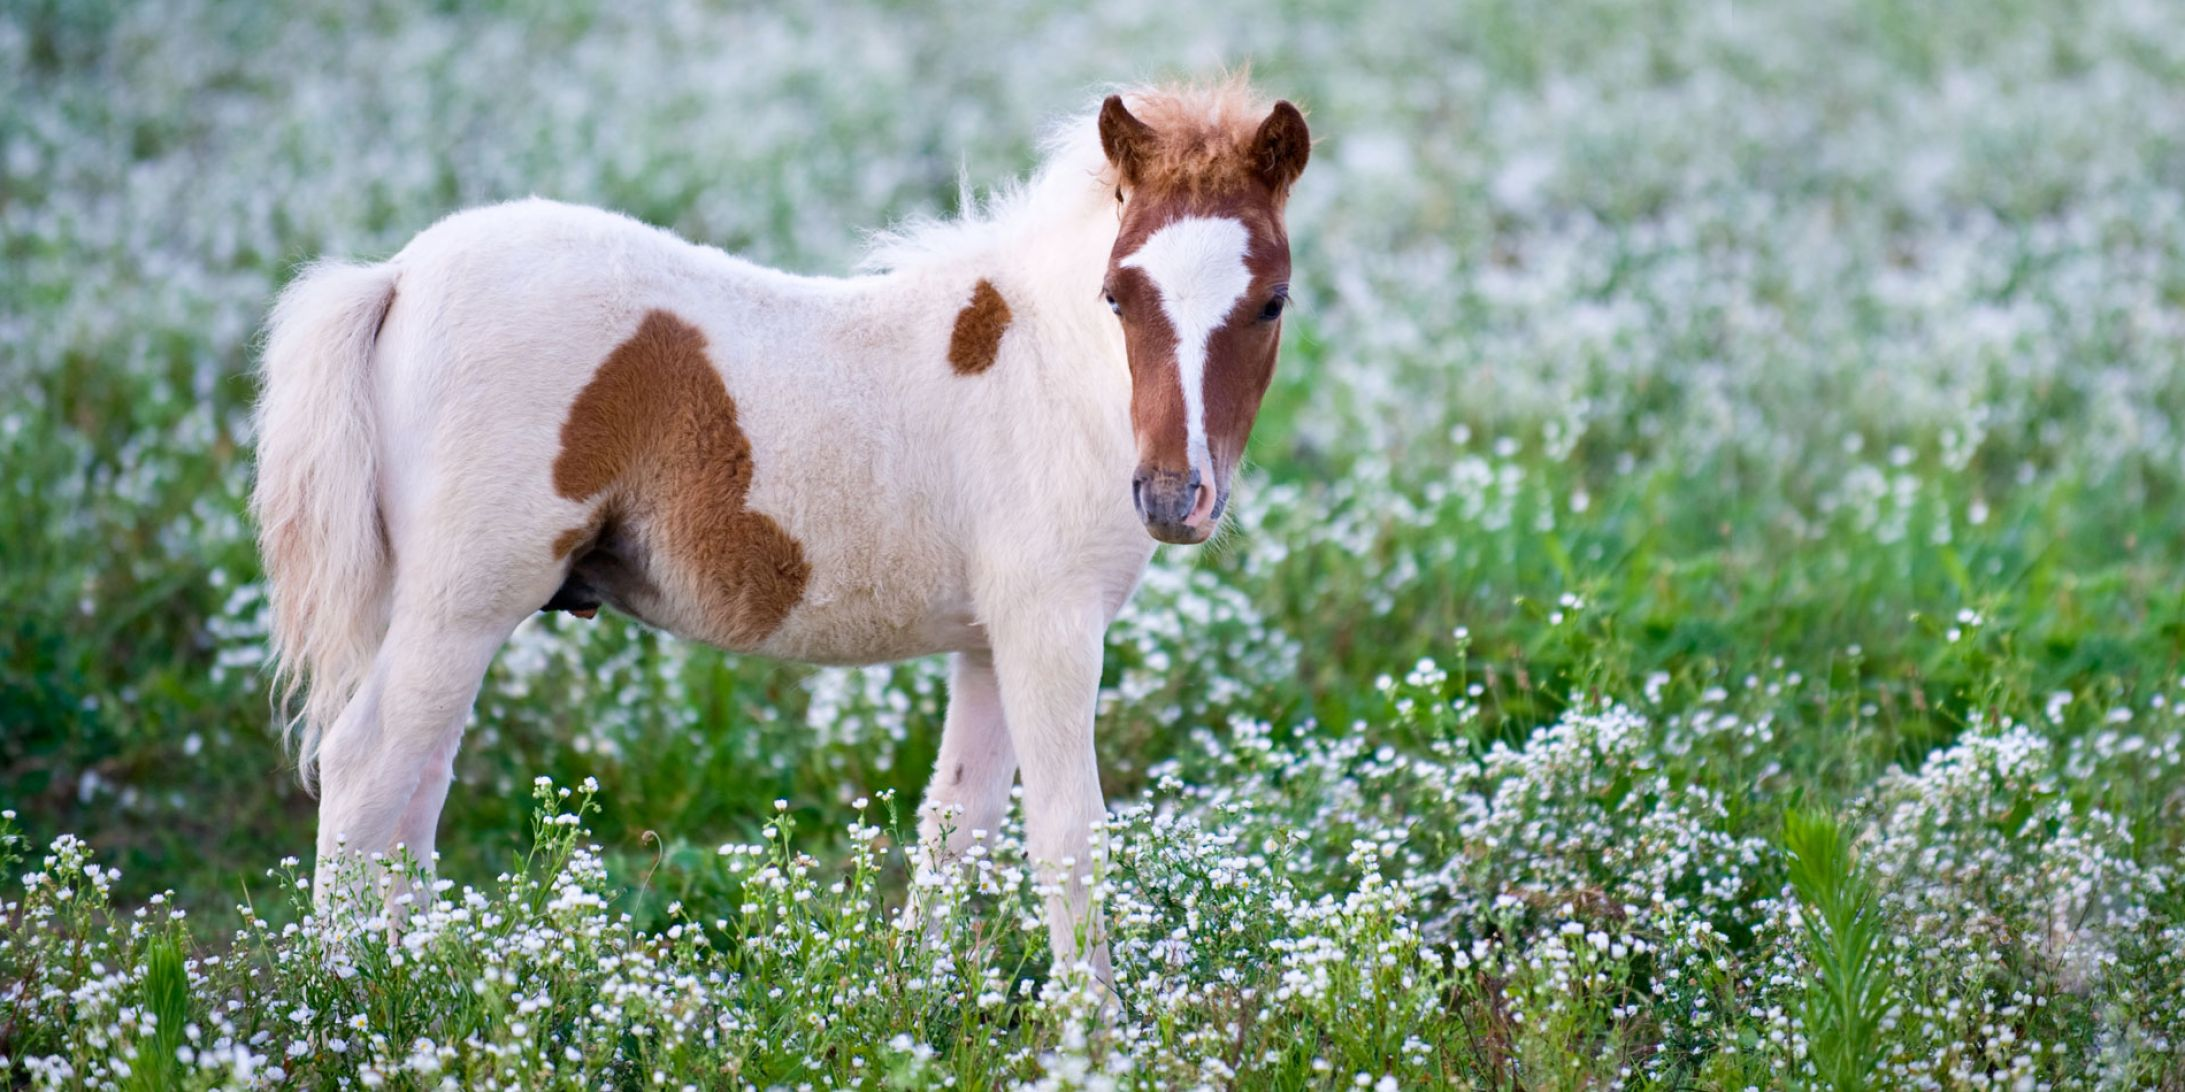 horses cute ponies horse pony too animal rabbits becca pm posted yahoo